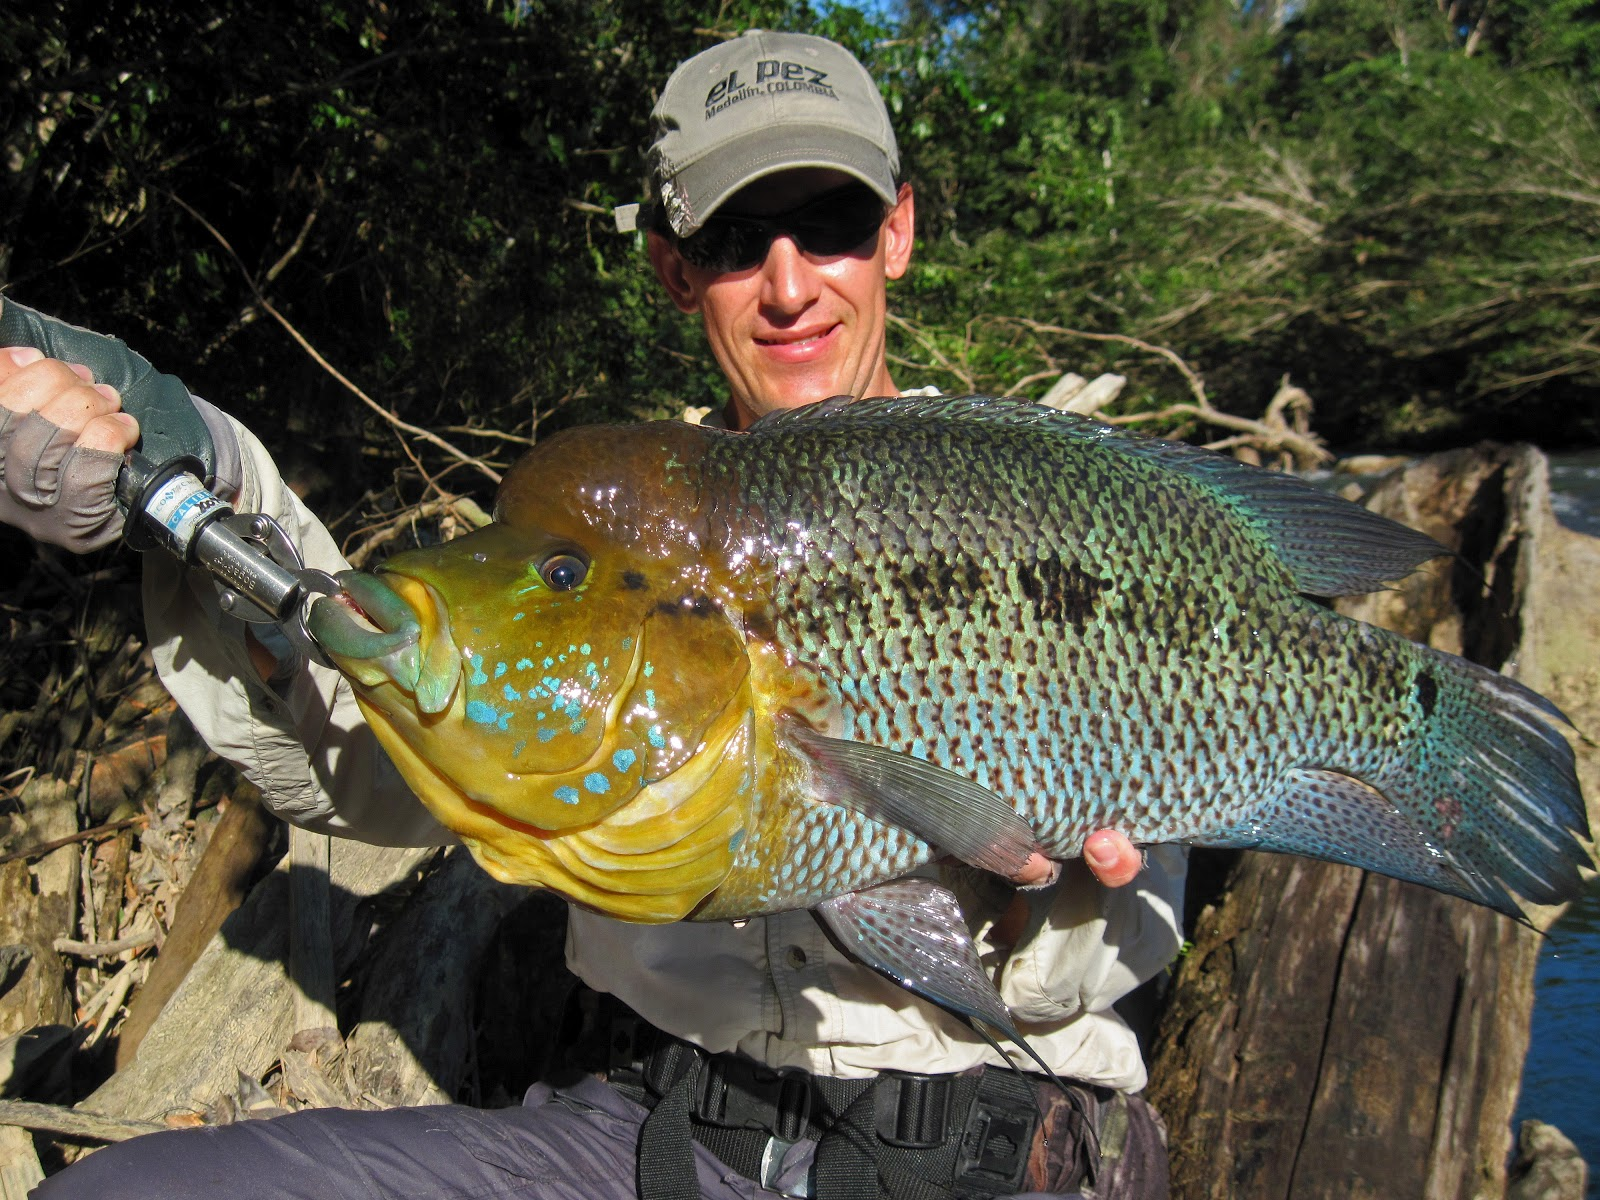 Record Freshwater Sunfish World record www.igfa.org